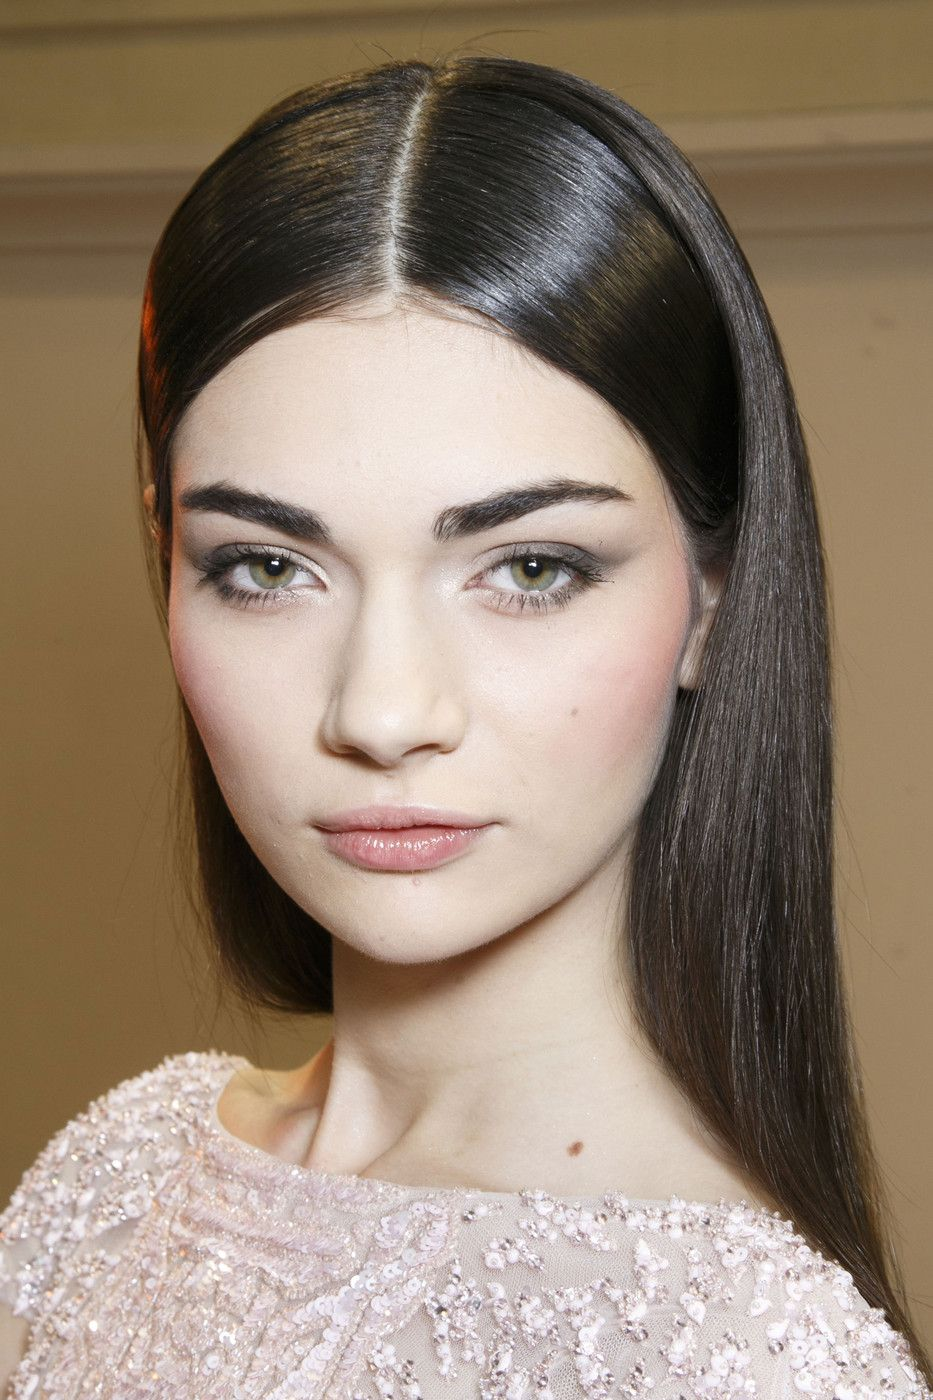 Pale skin sleek dark hair with center part bold brows gray shadow